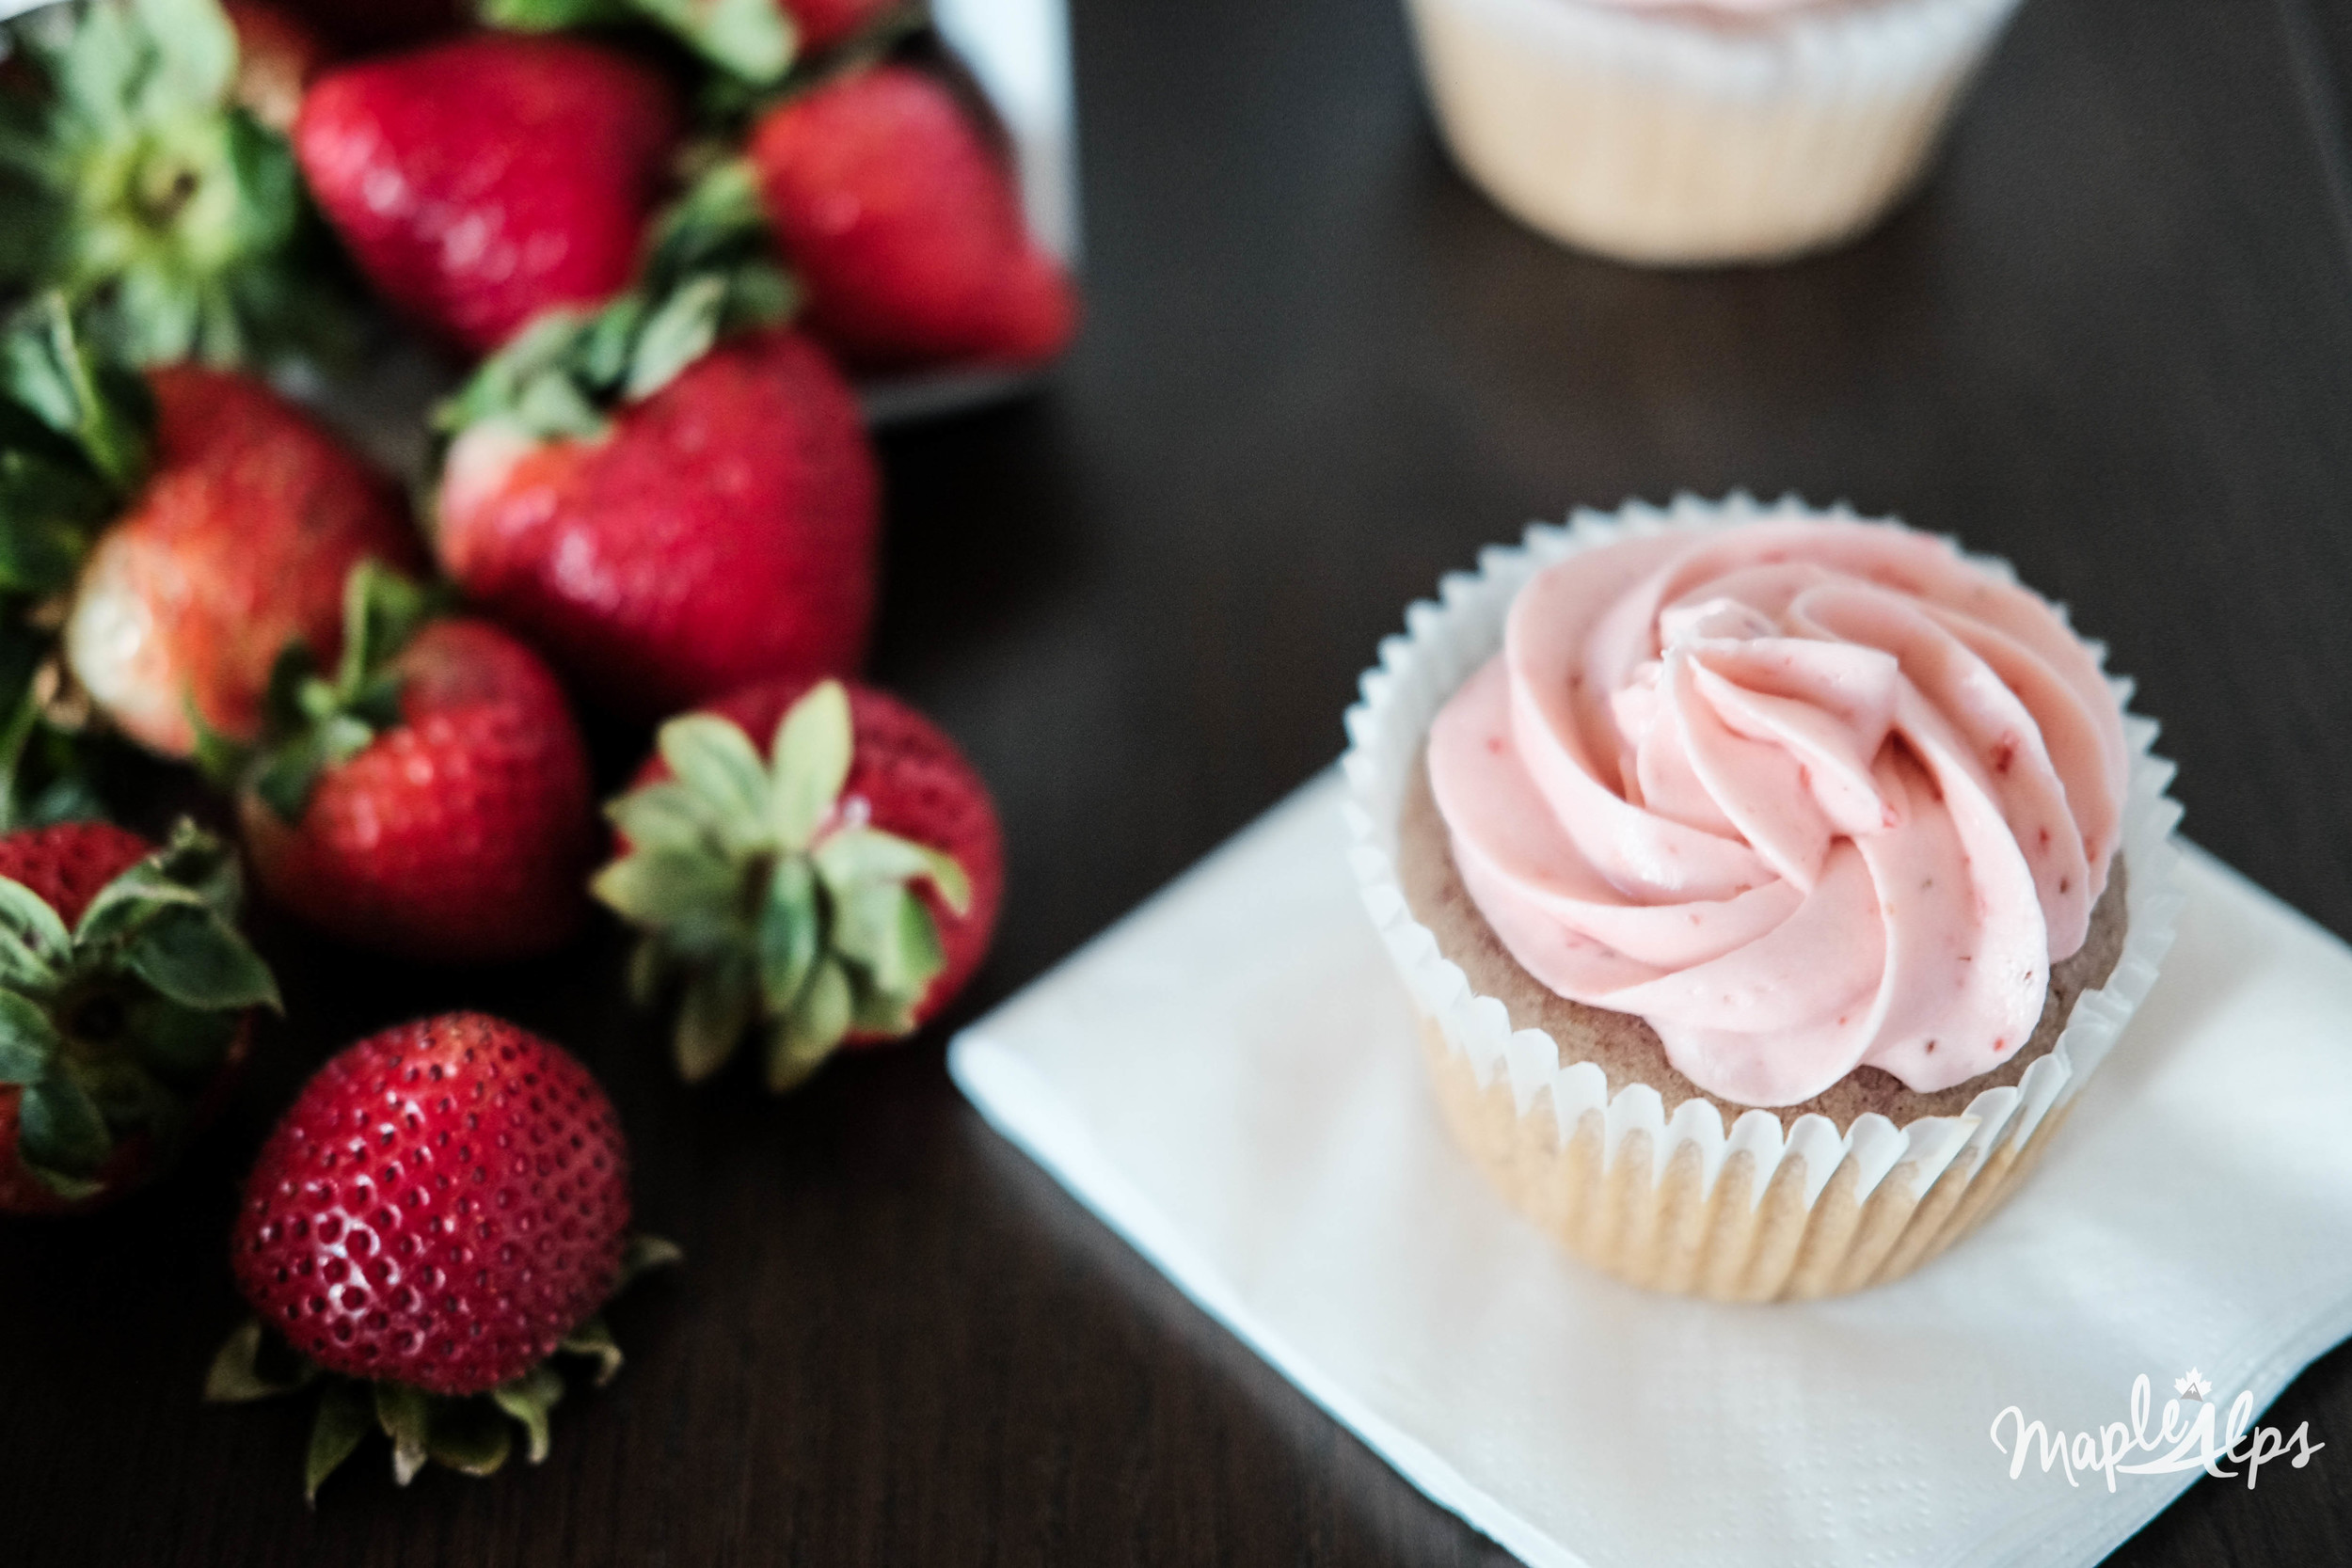 Easy Moist and Delicious vegan strawberry cupcakes! #MapleAlps